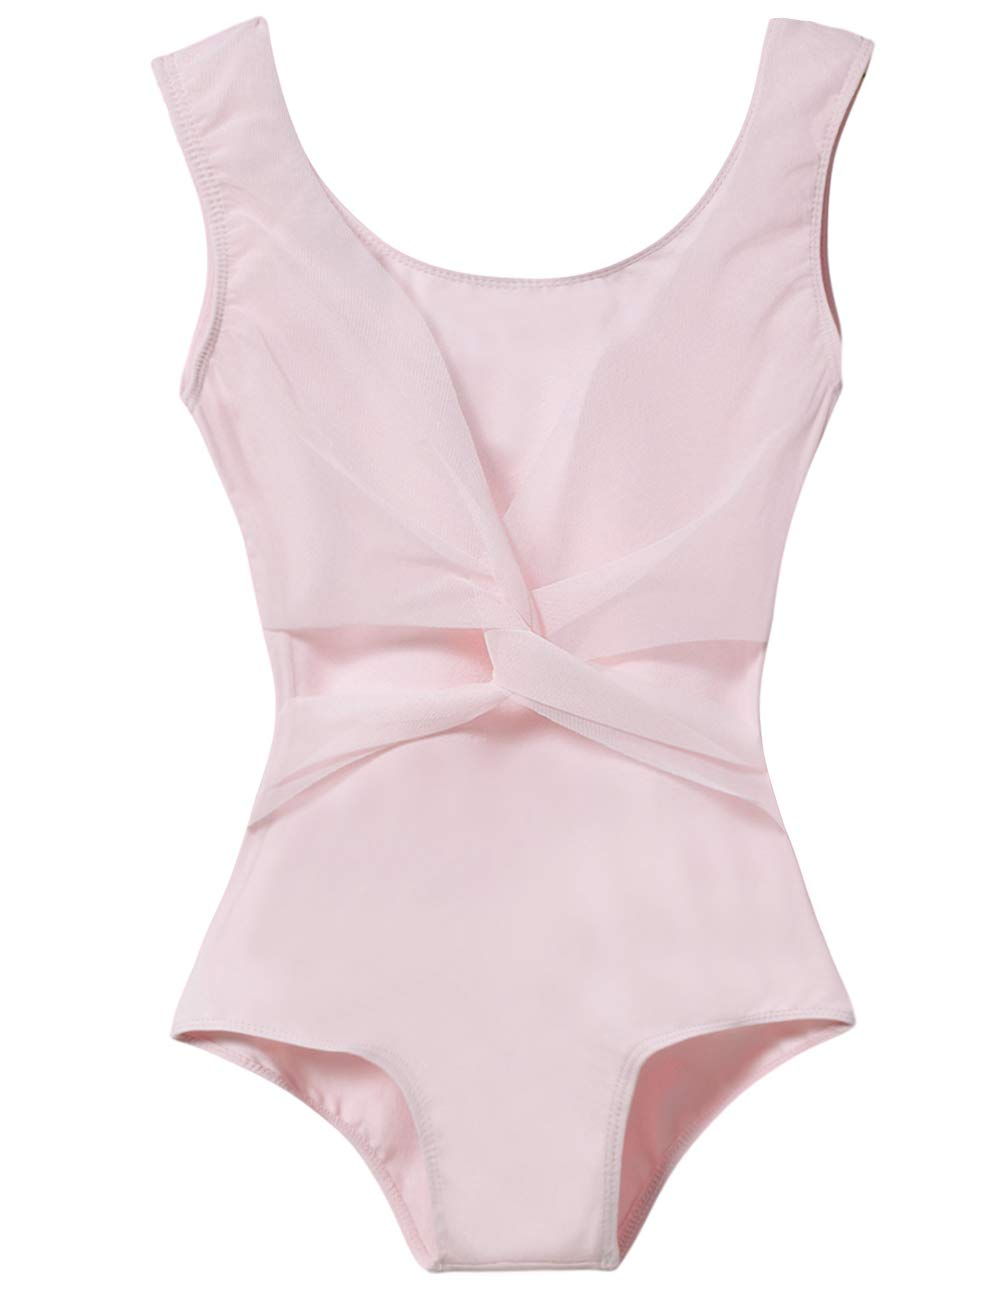 Ballet Leotard For Little Girls With Mesh Cross Front Age 4 6 Ballet Pink